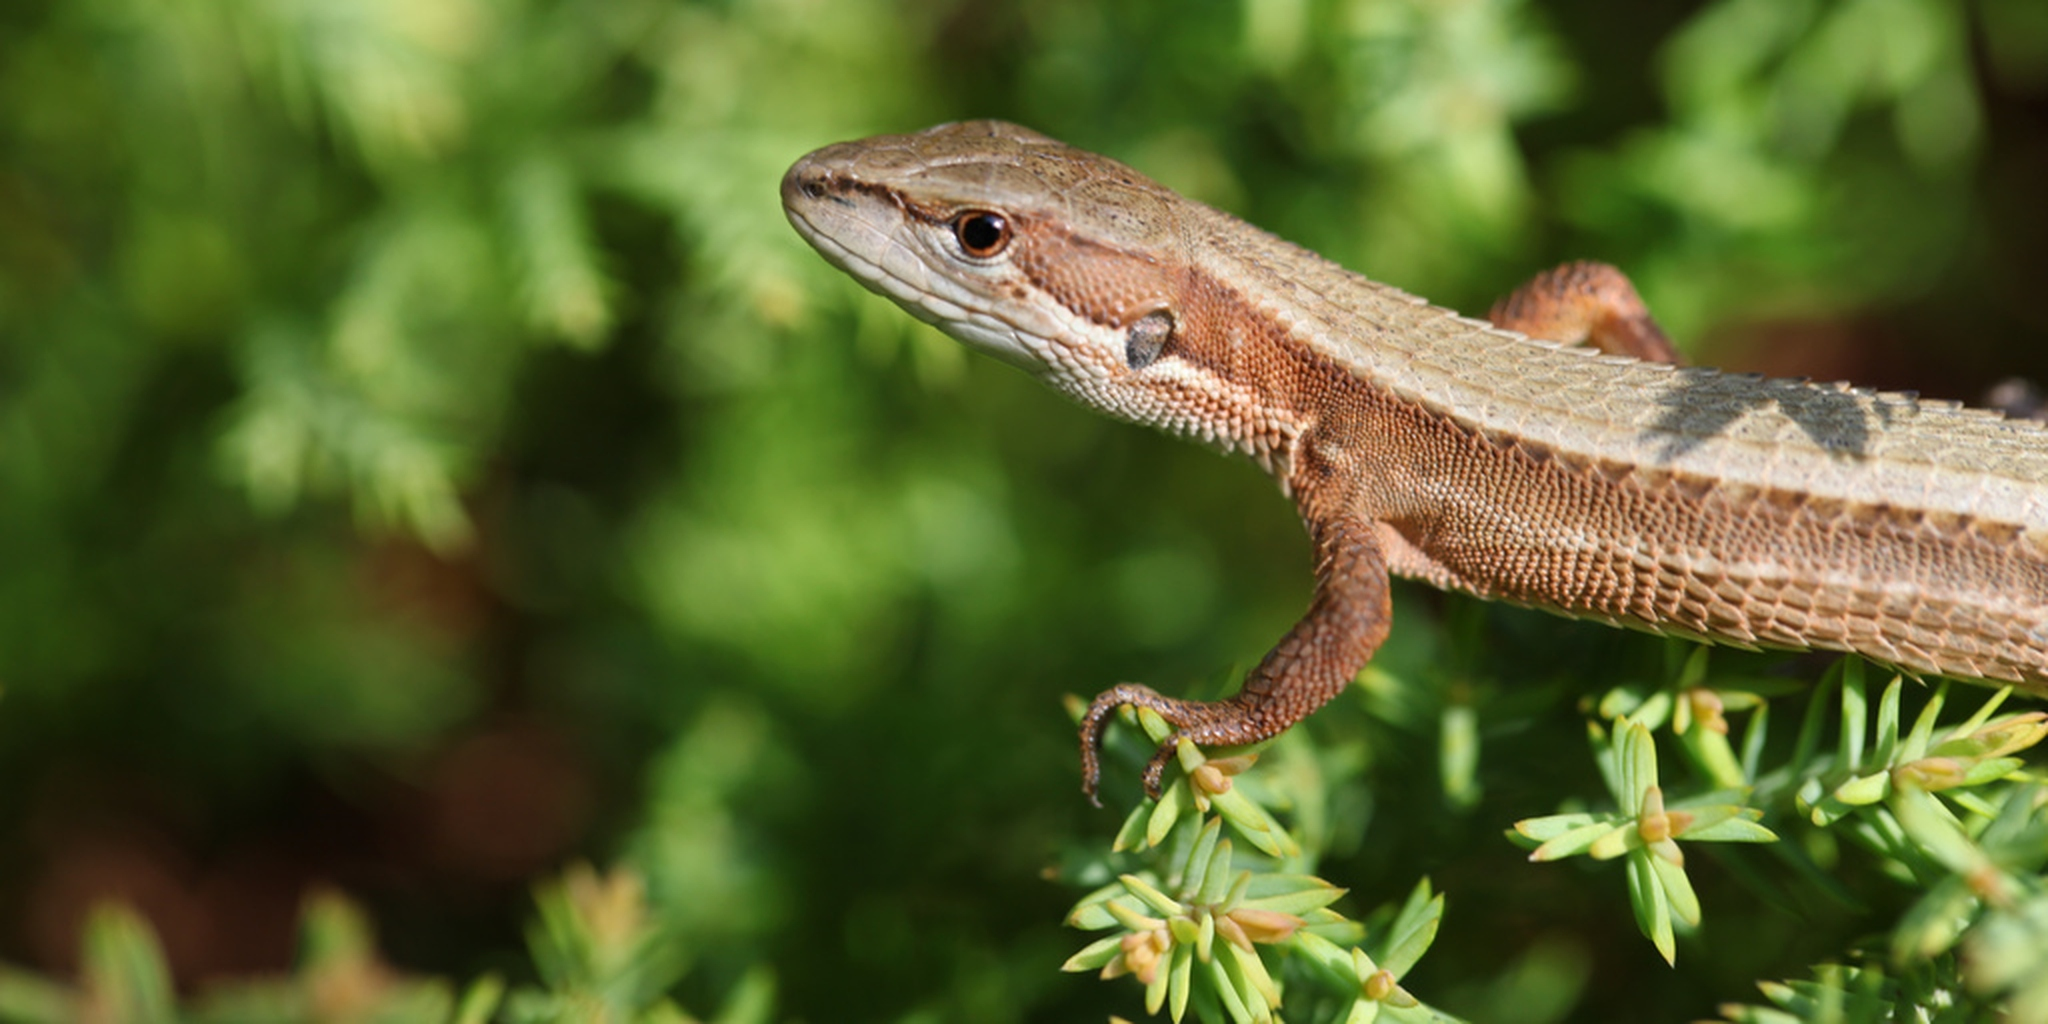 Questions I have about these people making out with a lizard | The ...